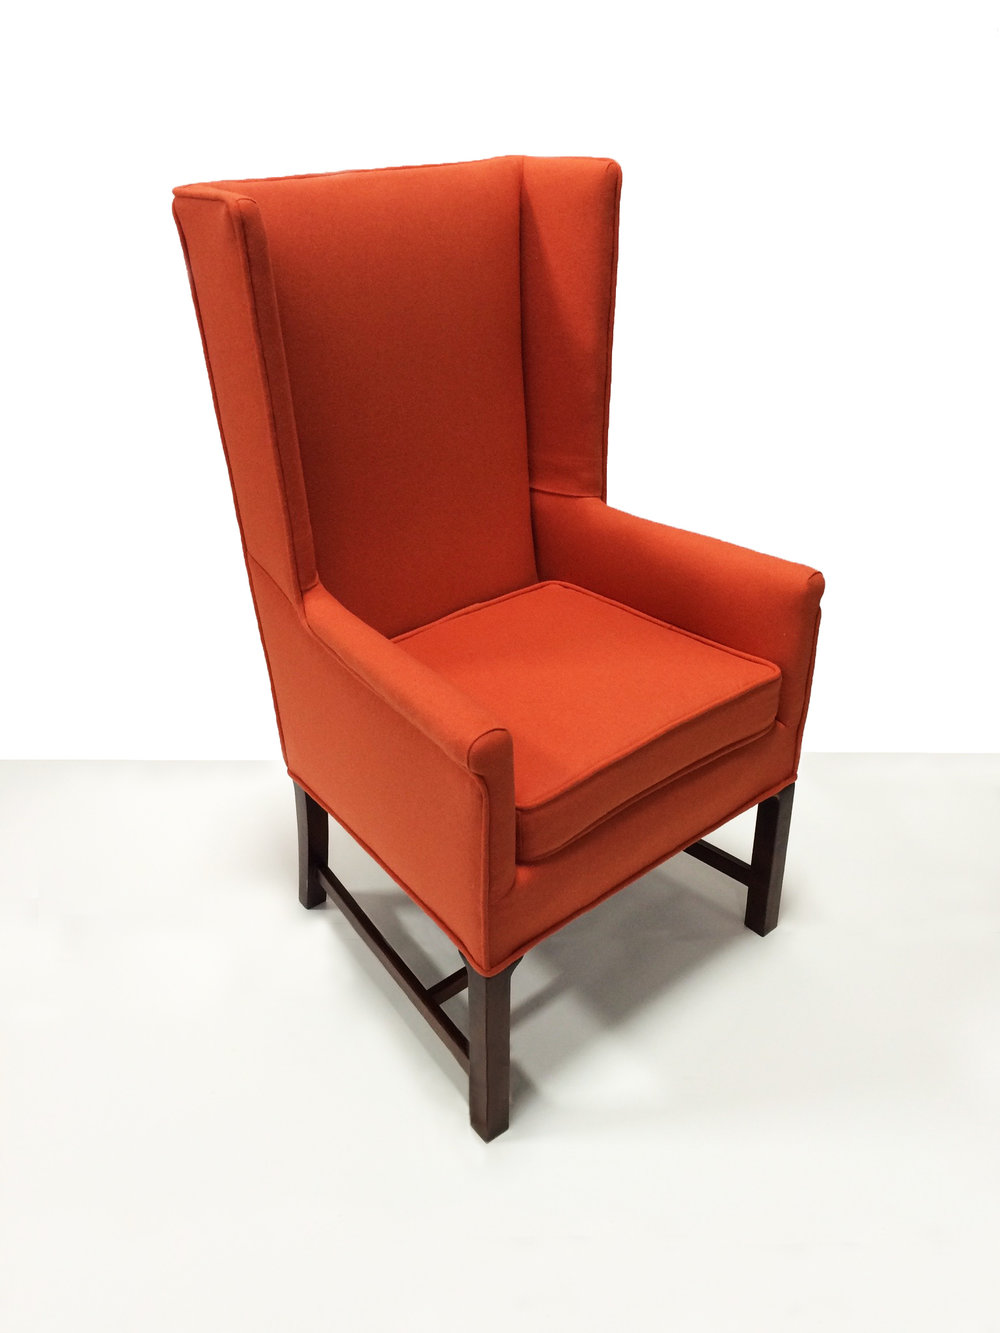 Orange-Upholstered-Chair.JPG